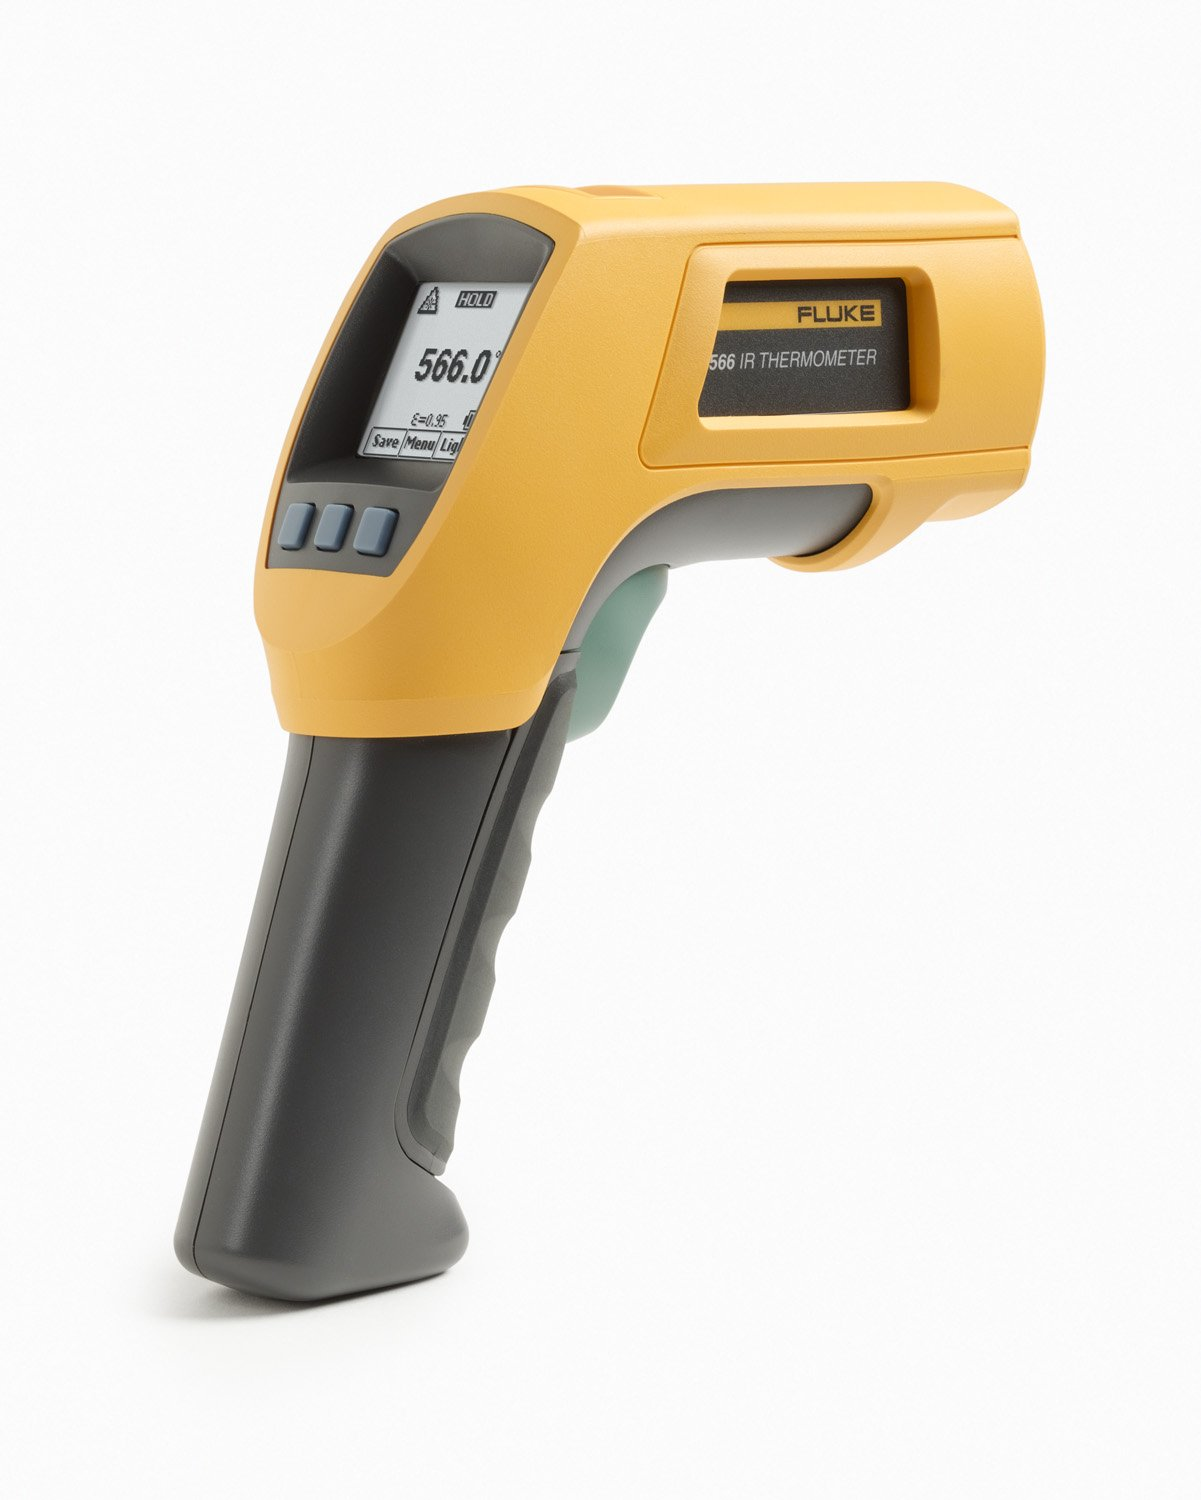 Fluke 566 Dual Infrared Thermometer, -40 to +1202 Degree F Range, Contact/Non Contact by Fluke